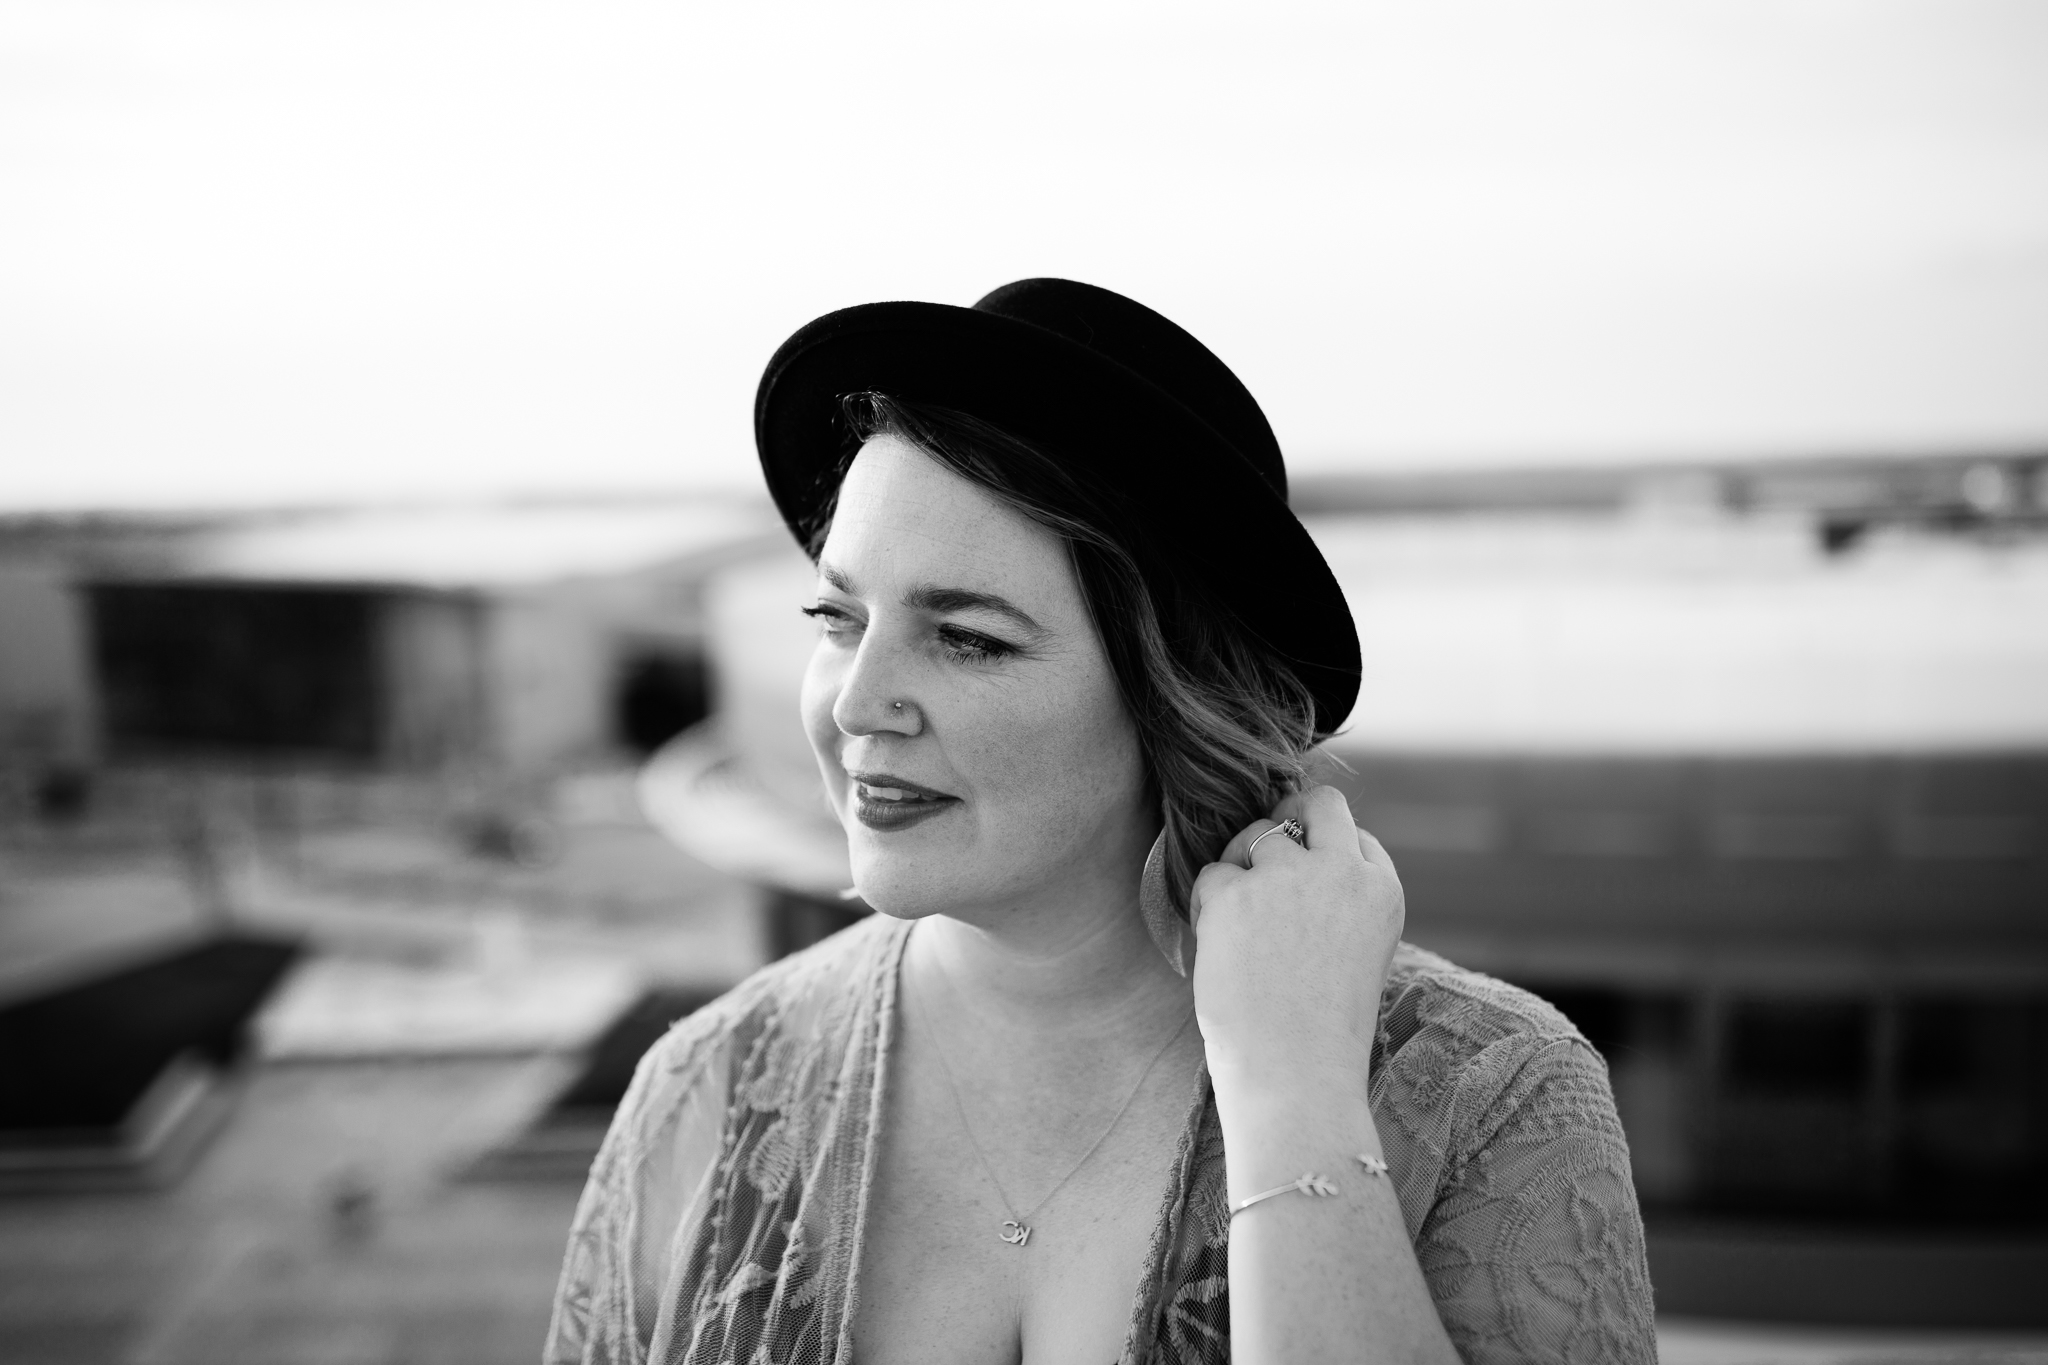 Black and white portrait of woman on a rooftop, Kansas City black and white headshot, Rebecca Clair Photography